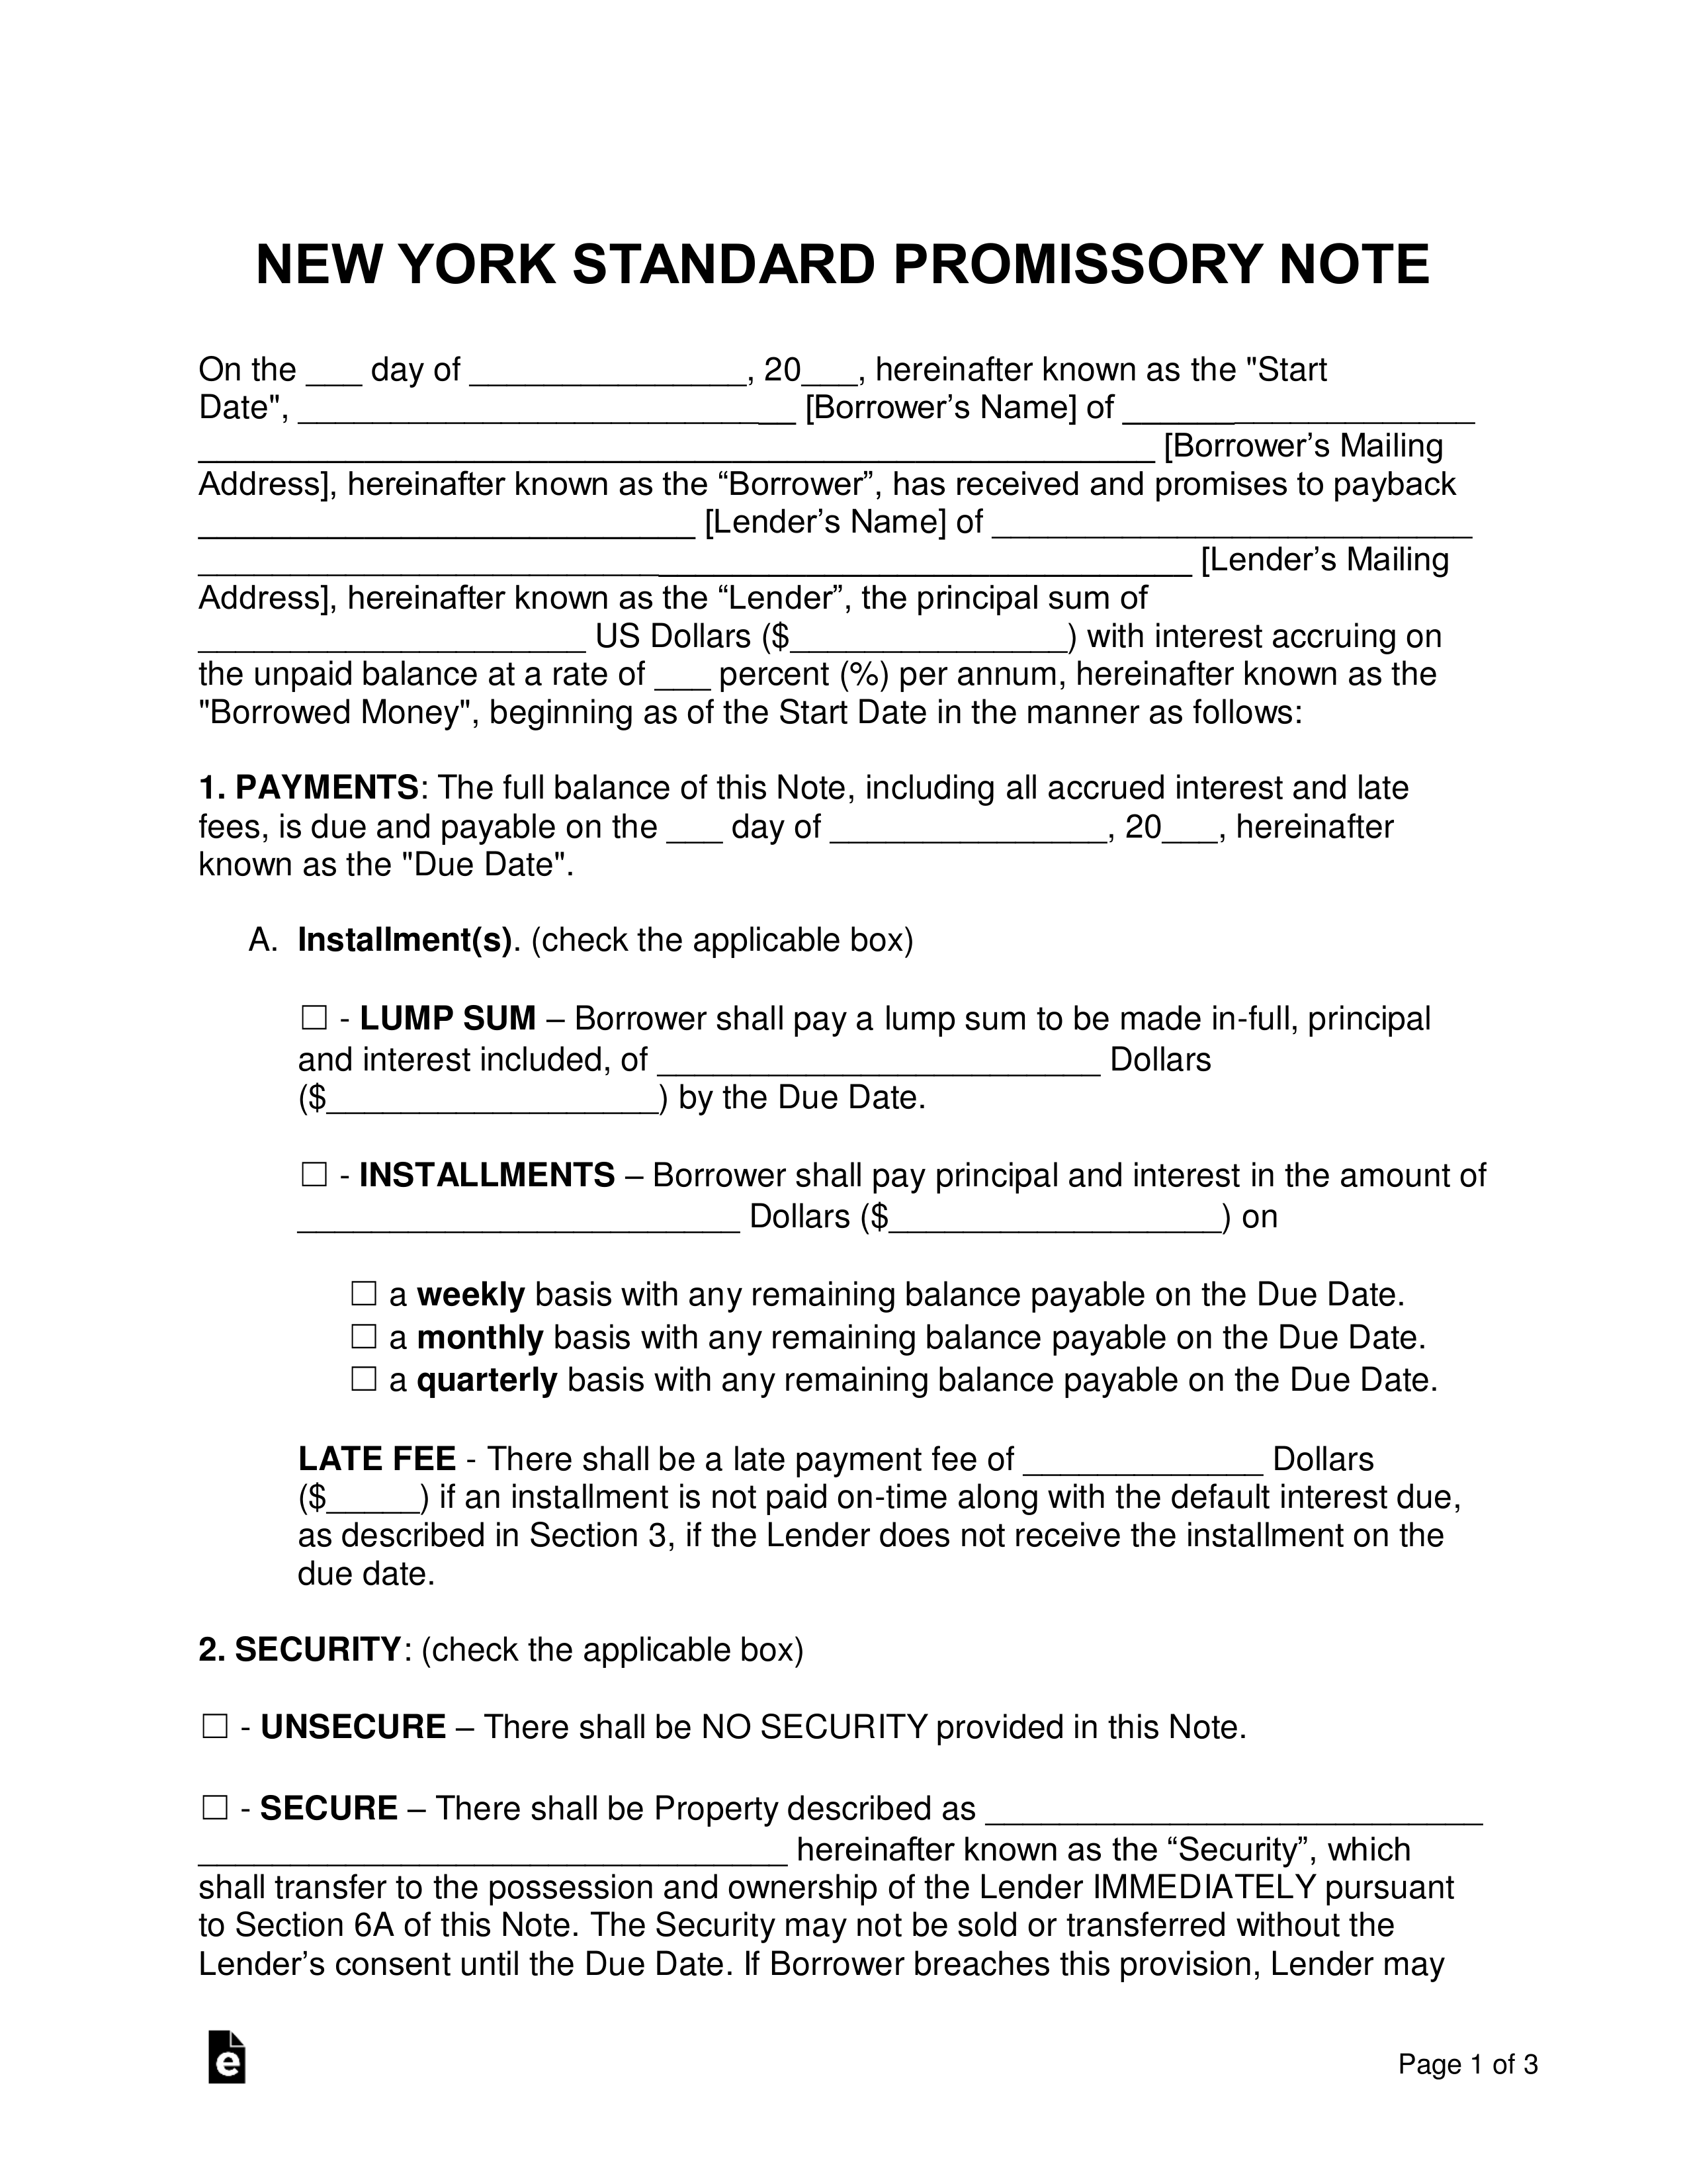 free new york promissory note templates